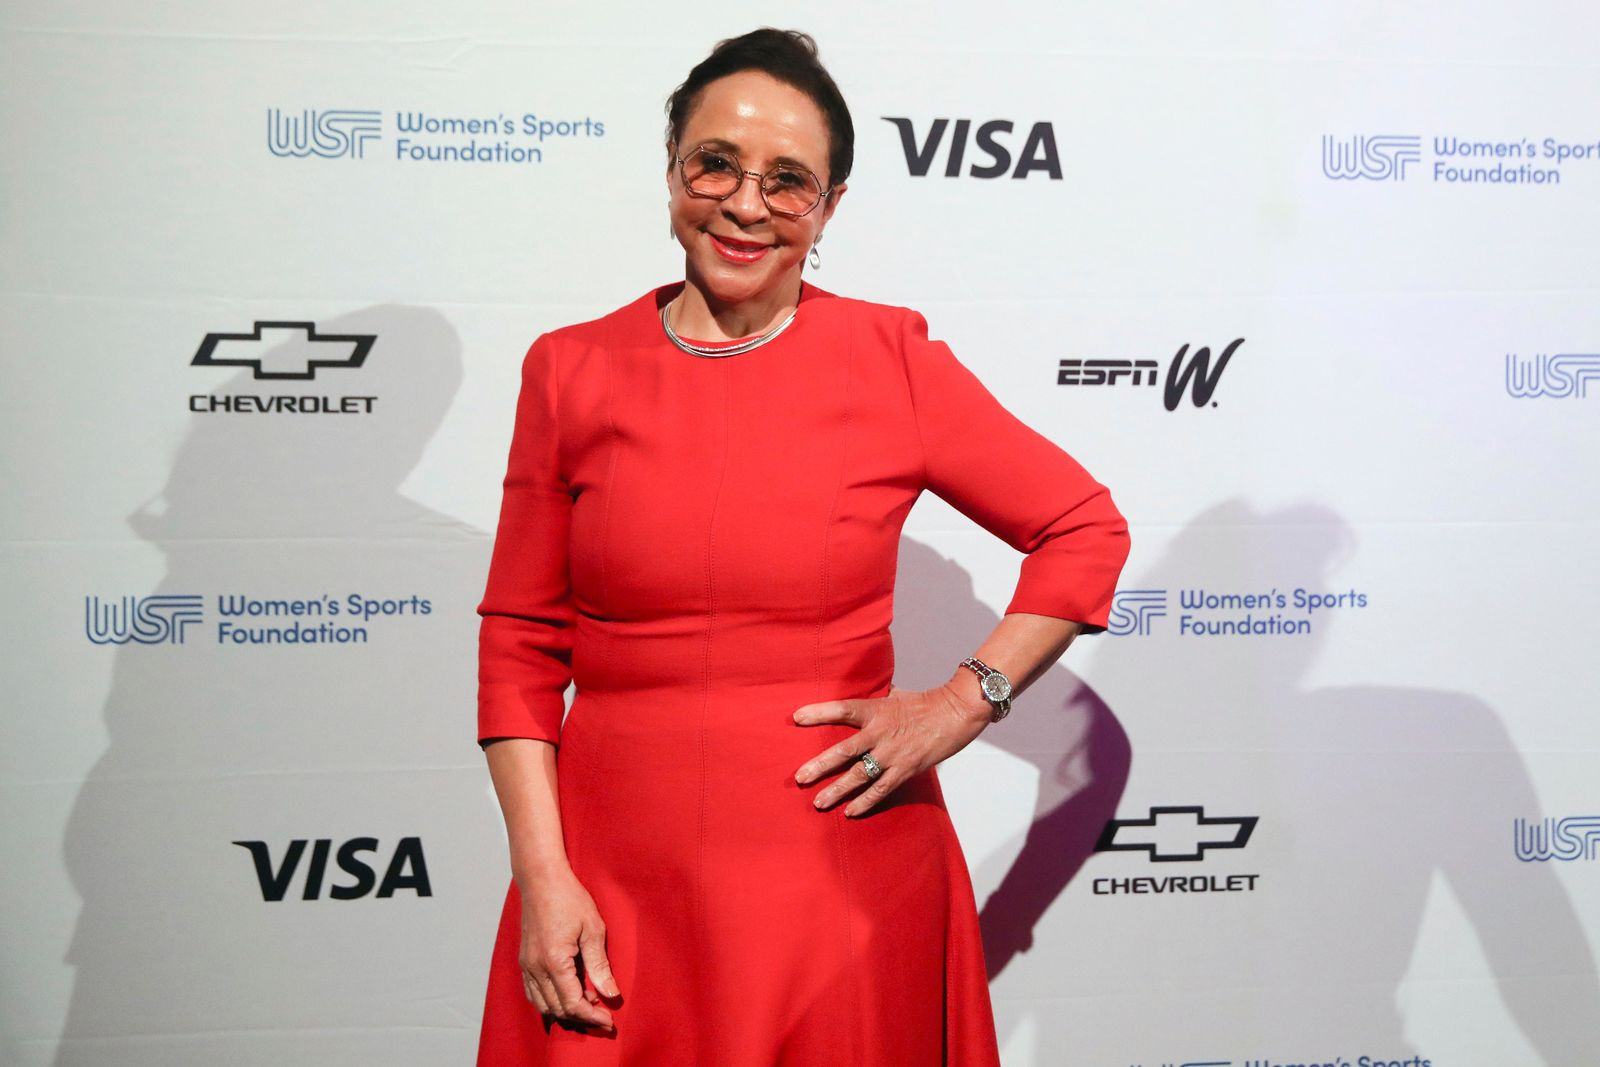 In this Wednesday, Oct. 16, 2019, photo businesswoman Sheila C. Johnson poses for photos on the red carpet of the Women's Sports Foundation's 40th annual Salute to Women in Sports in New York. Johnson, part-owner of the Washington Wizards, Capitals and recent WNBA champion Mystics, won the Billie Jean King Leadership Award. (AP Photo/Mary Altaffer)